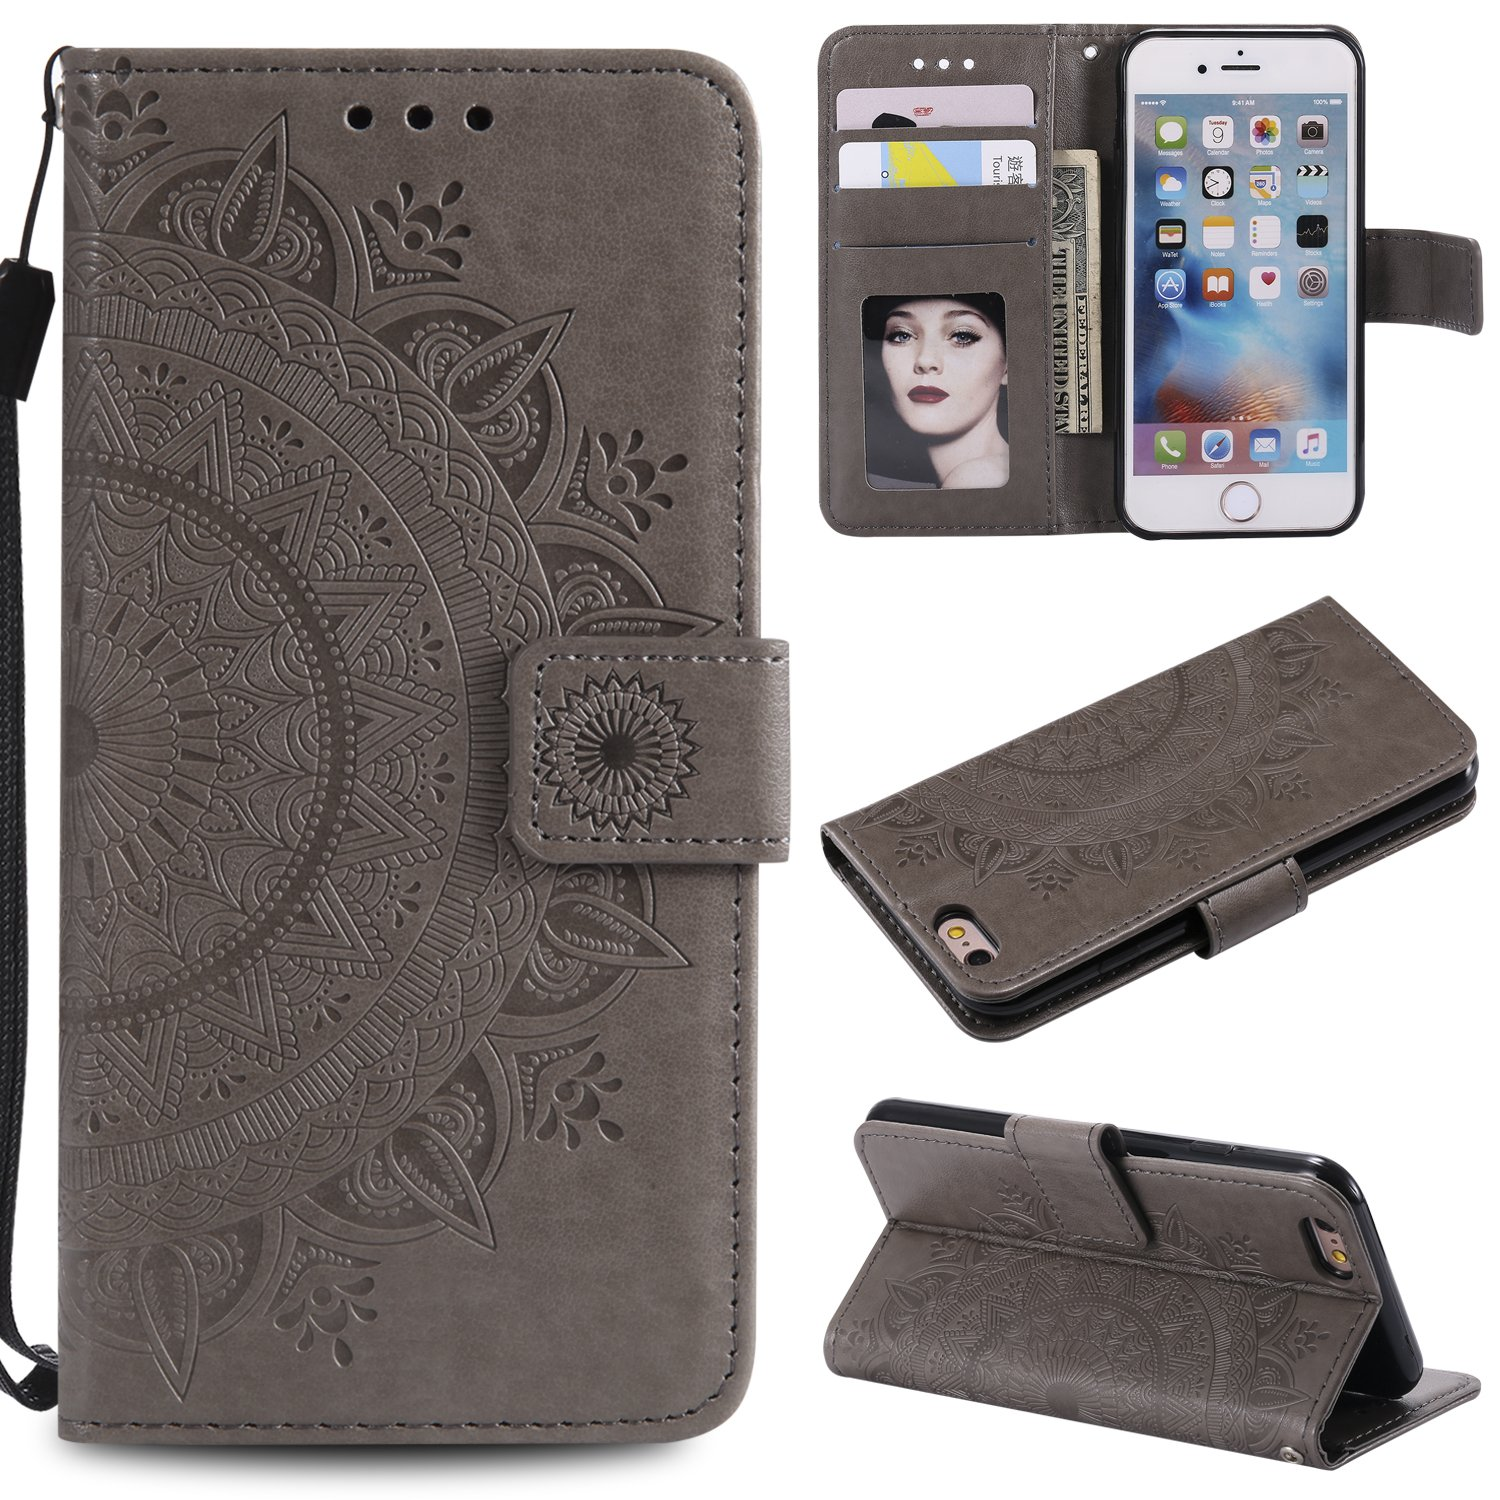 Floral Wallet Case for iPhone 6S 4.7'',Strap Flip Case for iPhone 6 4.7'',Leecase Embossed Totem Flower Design Pu Leather Bookstyle Stand Flip Case for iPhone 6S/6 4.7''-Grey